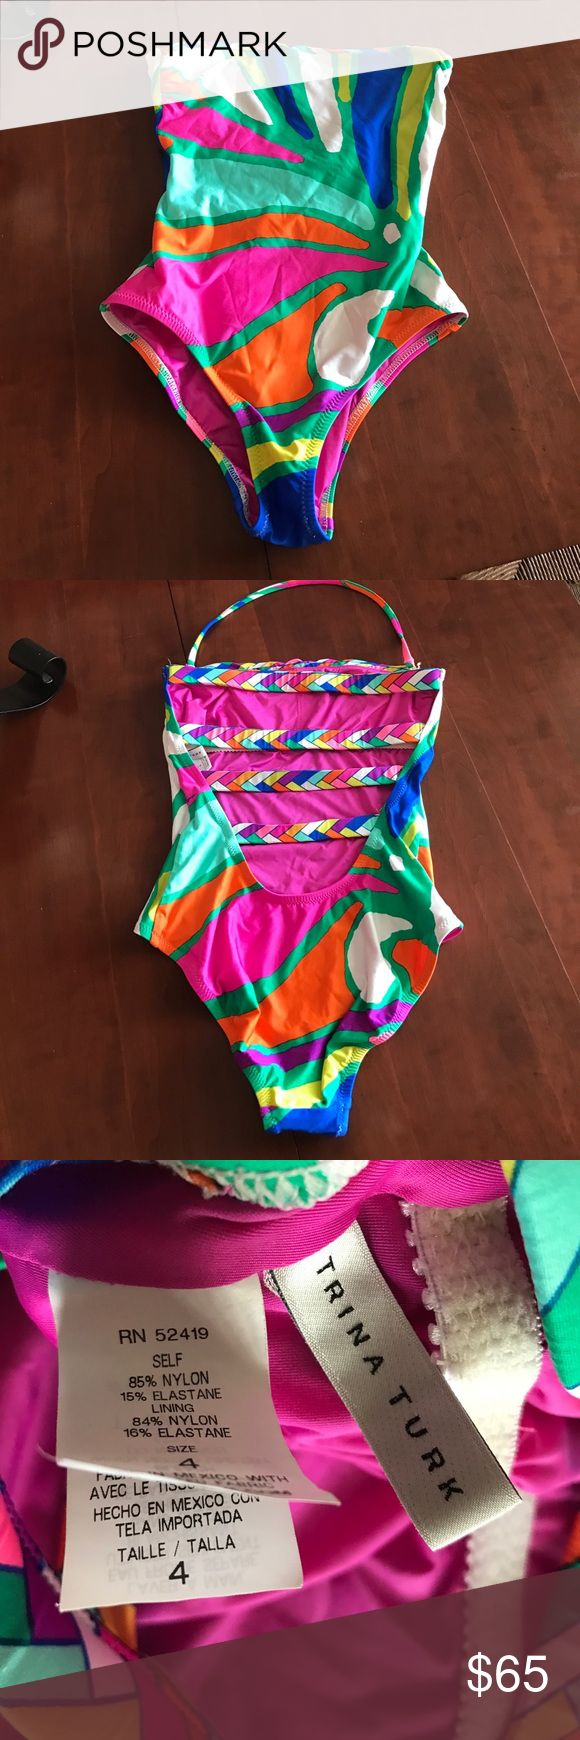 Trina Turk Swimsuit Can wear strapless or with the strap. Only worn once. Too small for me. Trina Turk Swim One Pieces